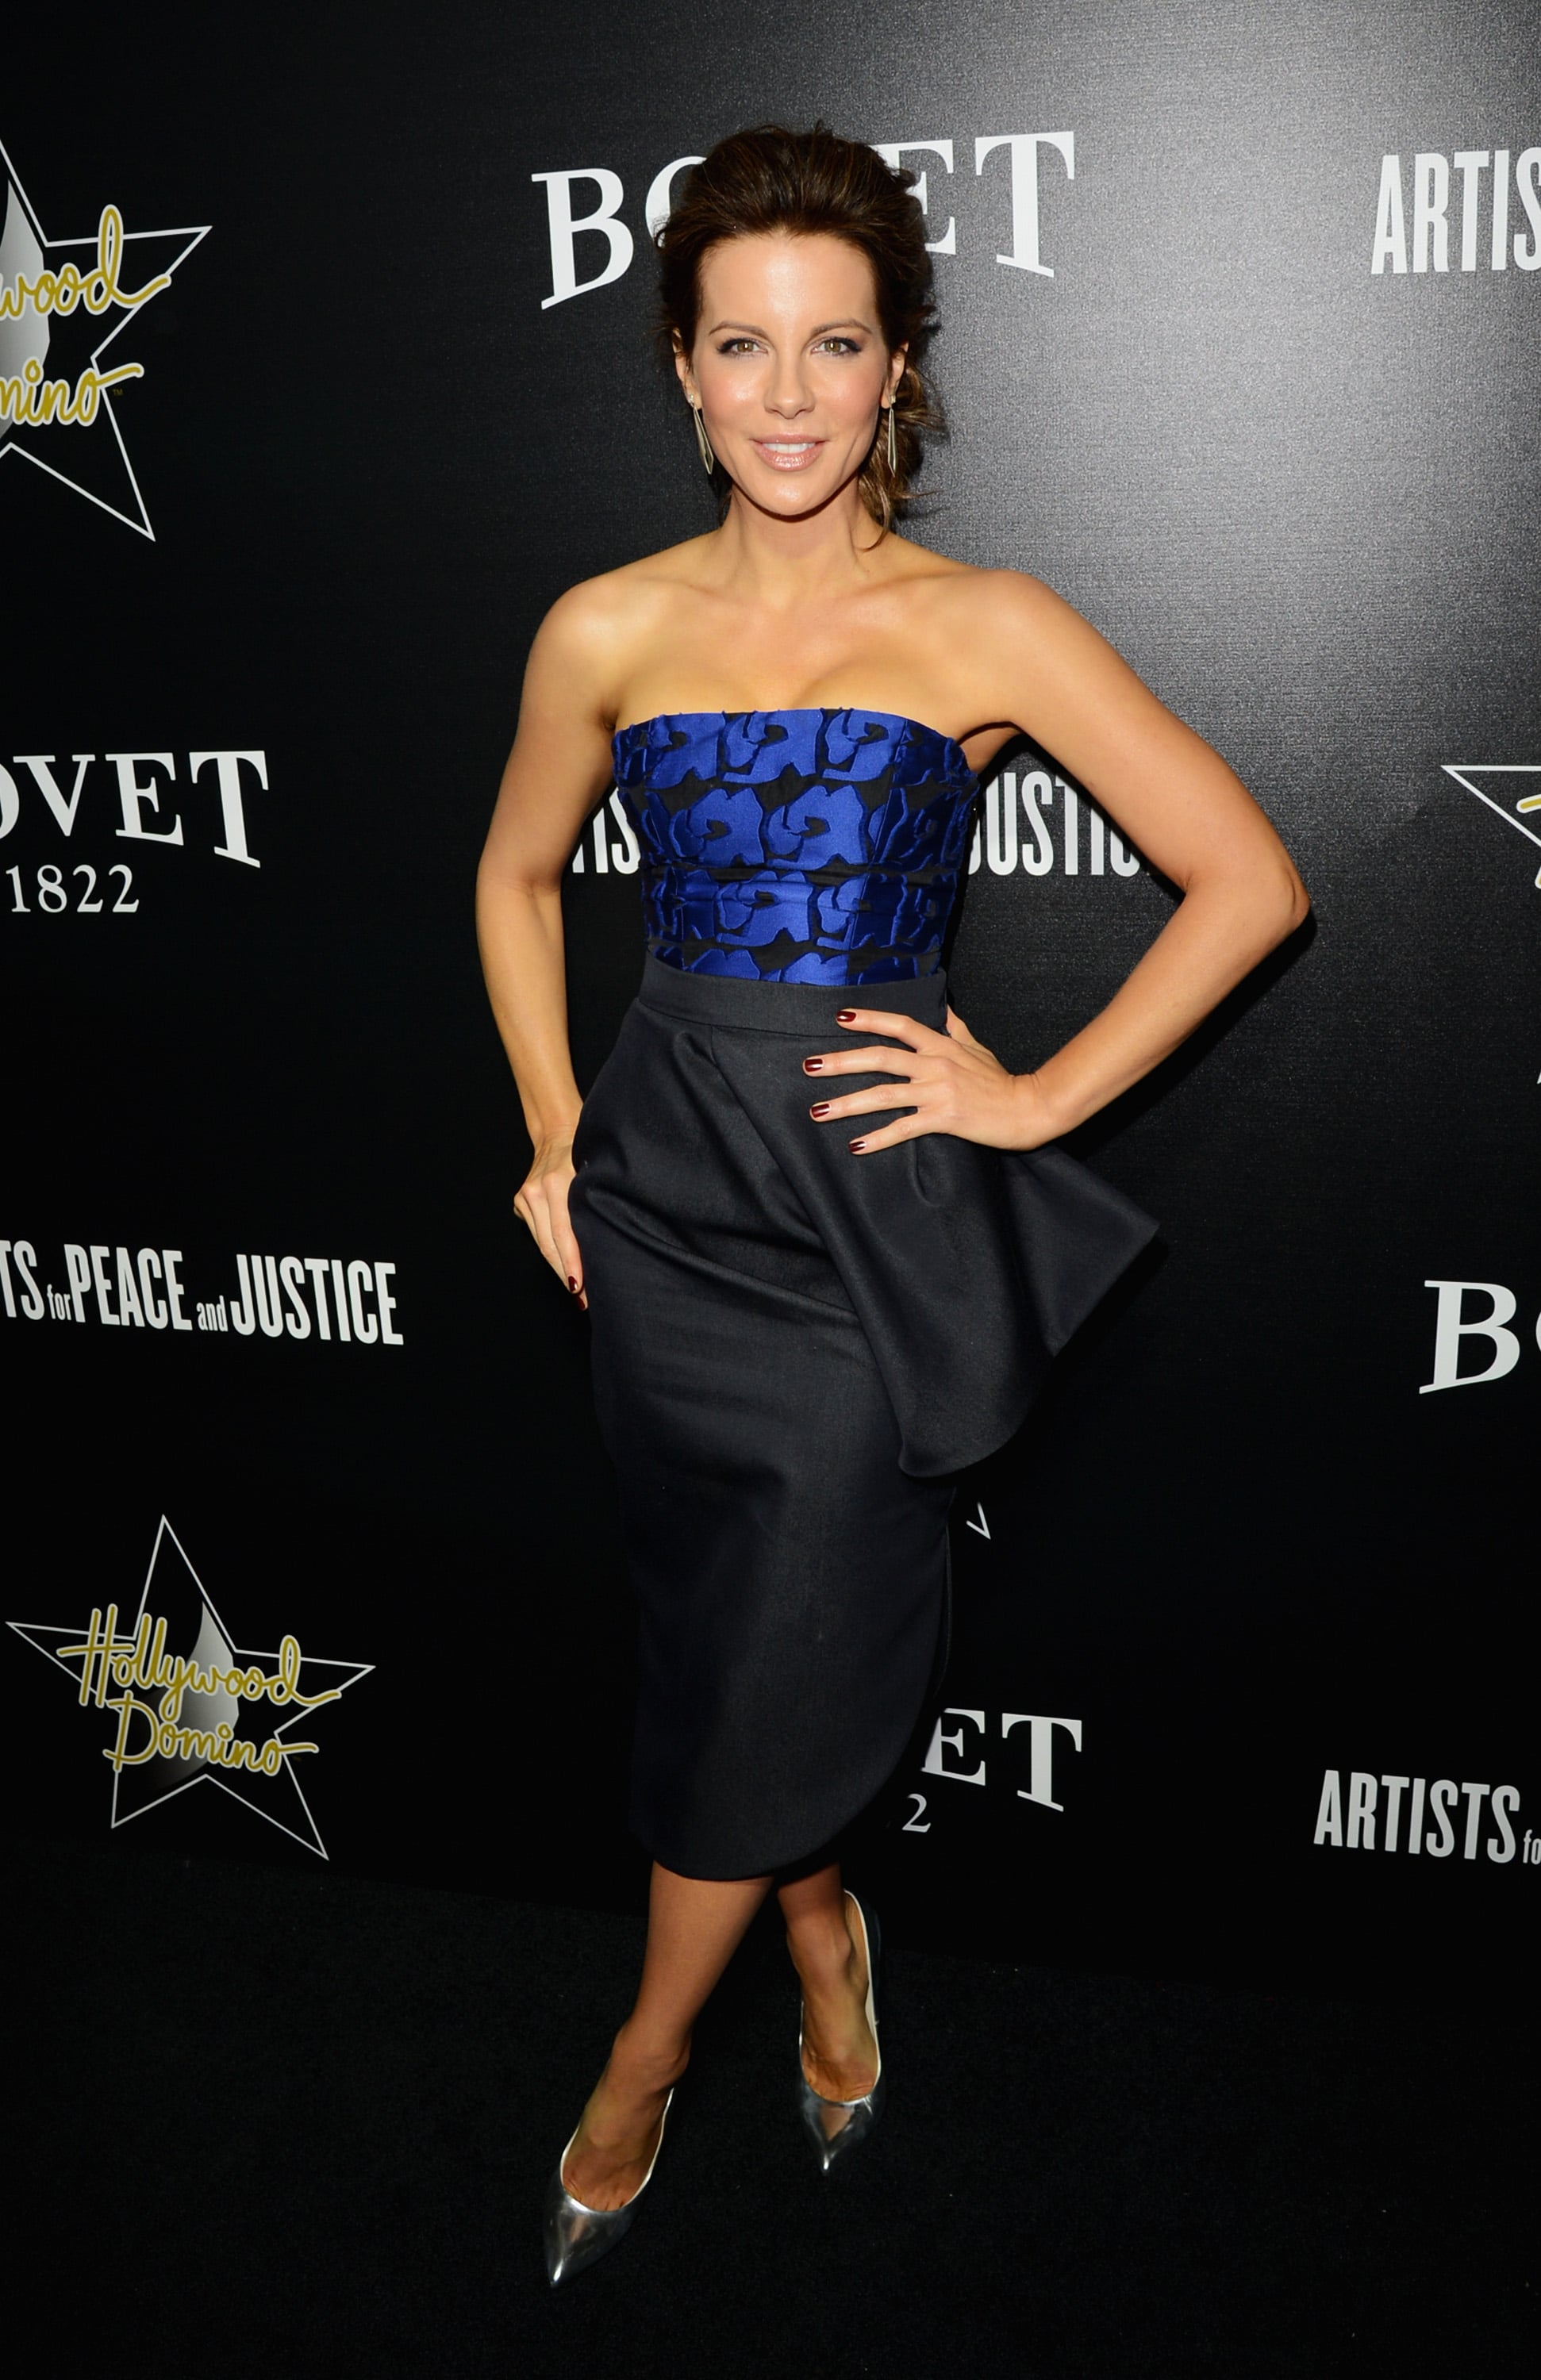 Kate Beckinsale at the Hollywood Domino and Bovet 1822 Gala